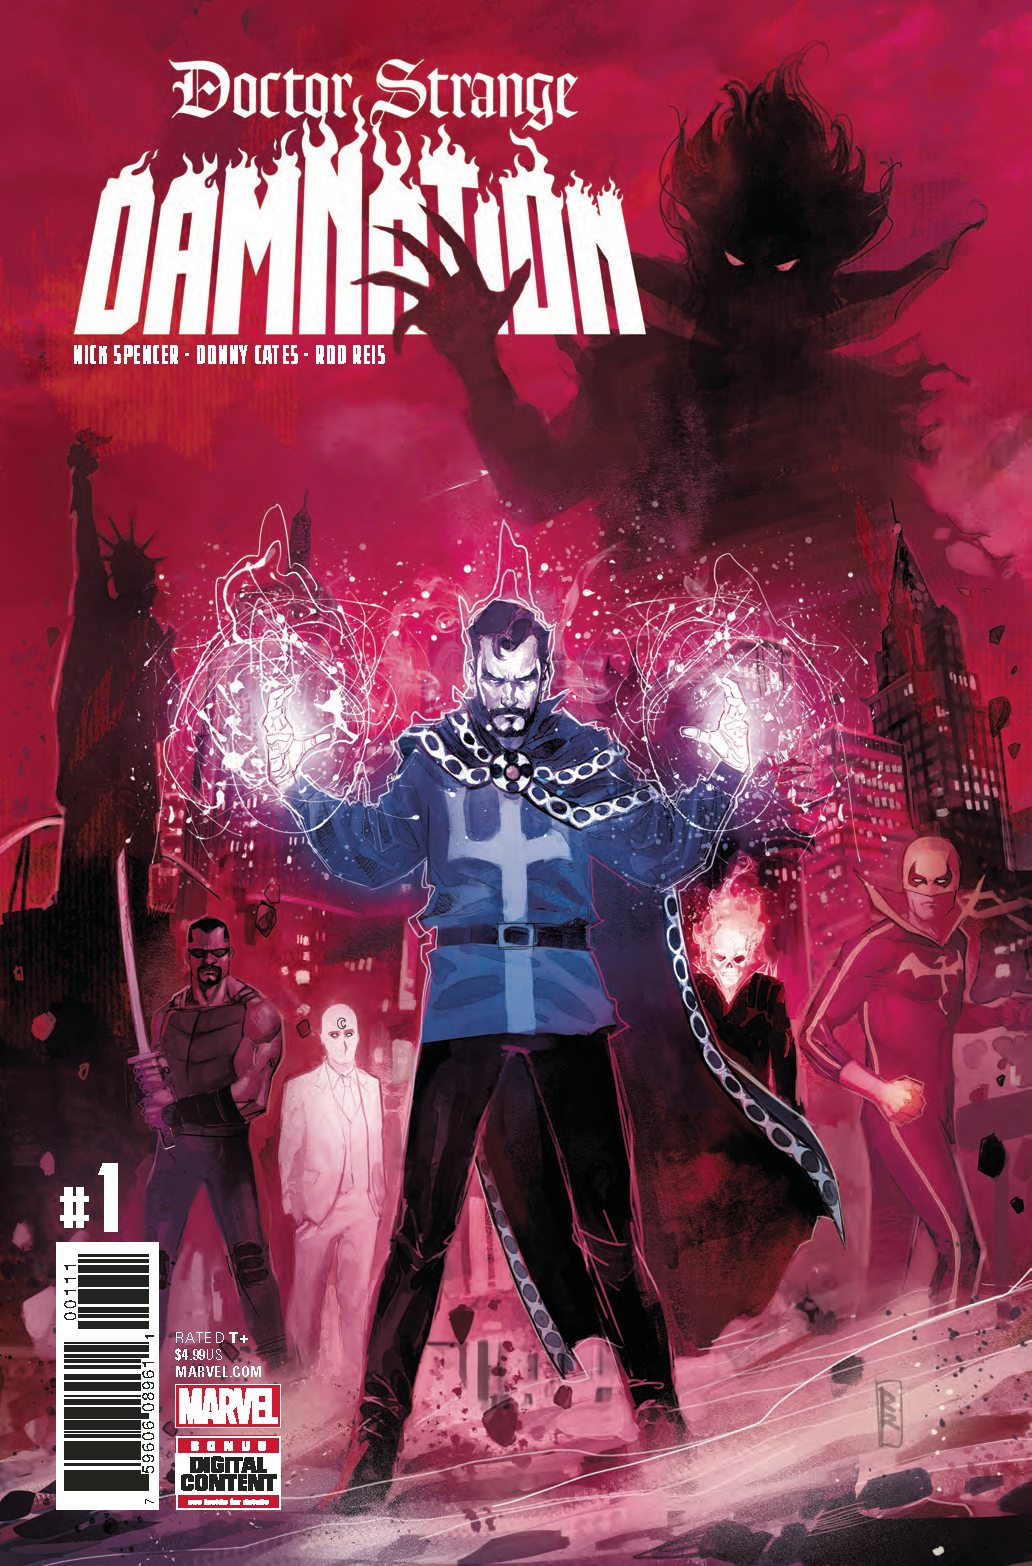 DOCTOR STRANGE DAMNATION #1 (OF 4) LEG